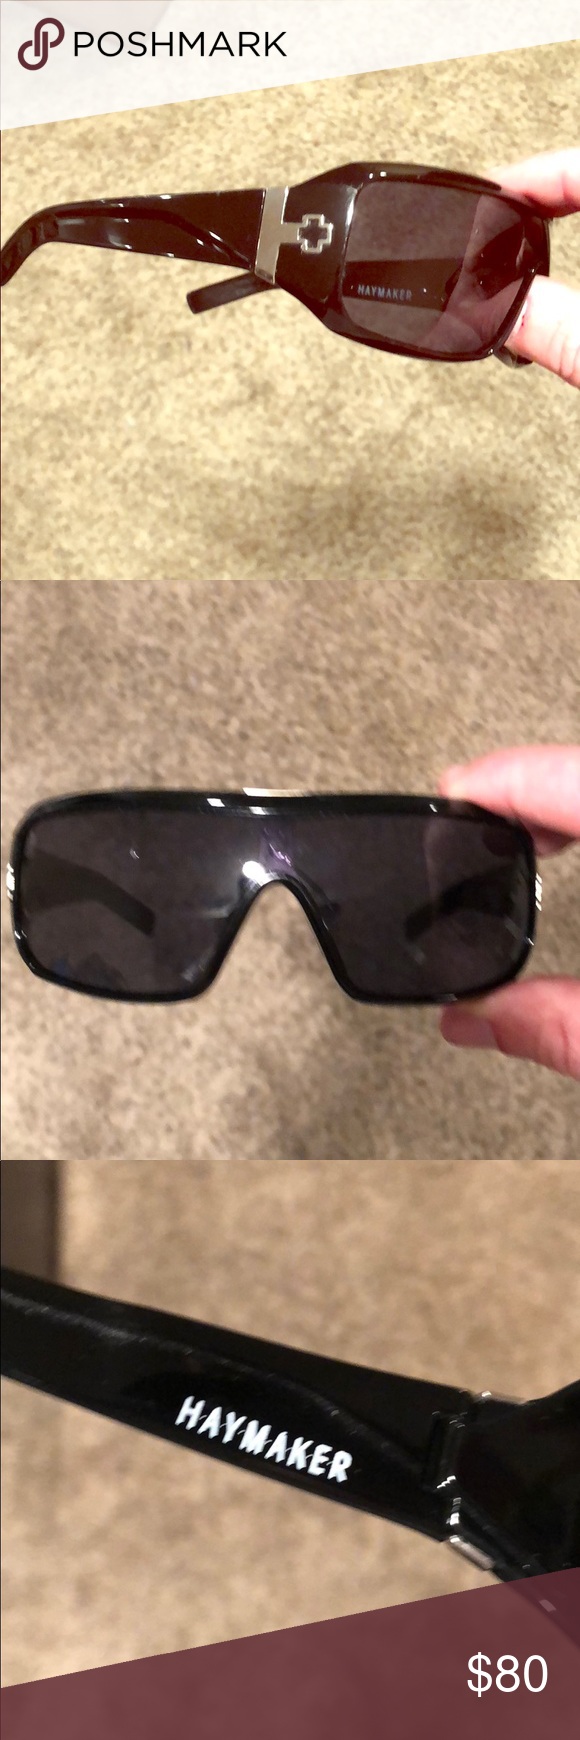 15119859b8 Spy sunglasses haymaker only used few times in great shape accessories  sunglasses png 580x1740 Haymaker sunglasses